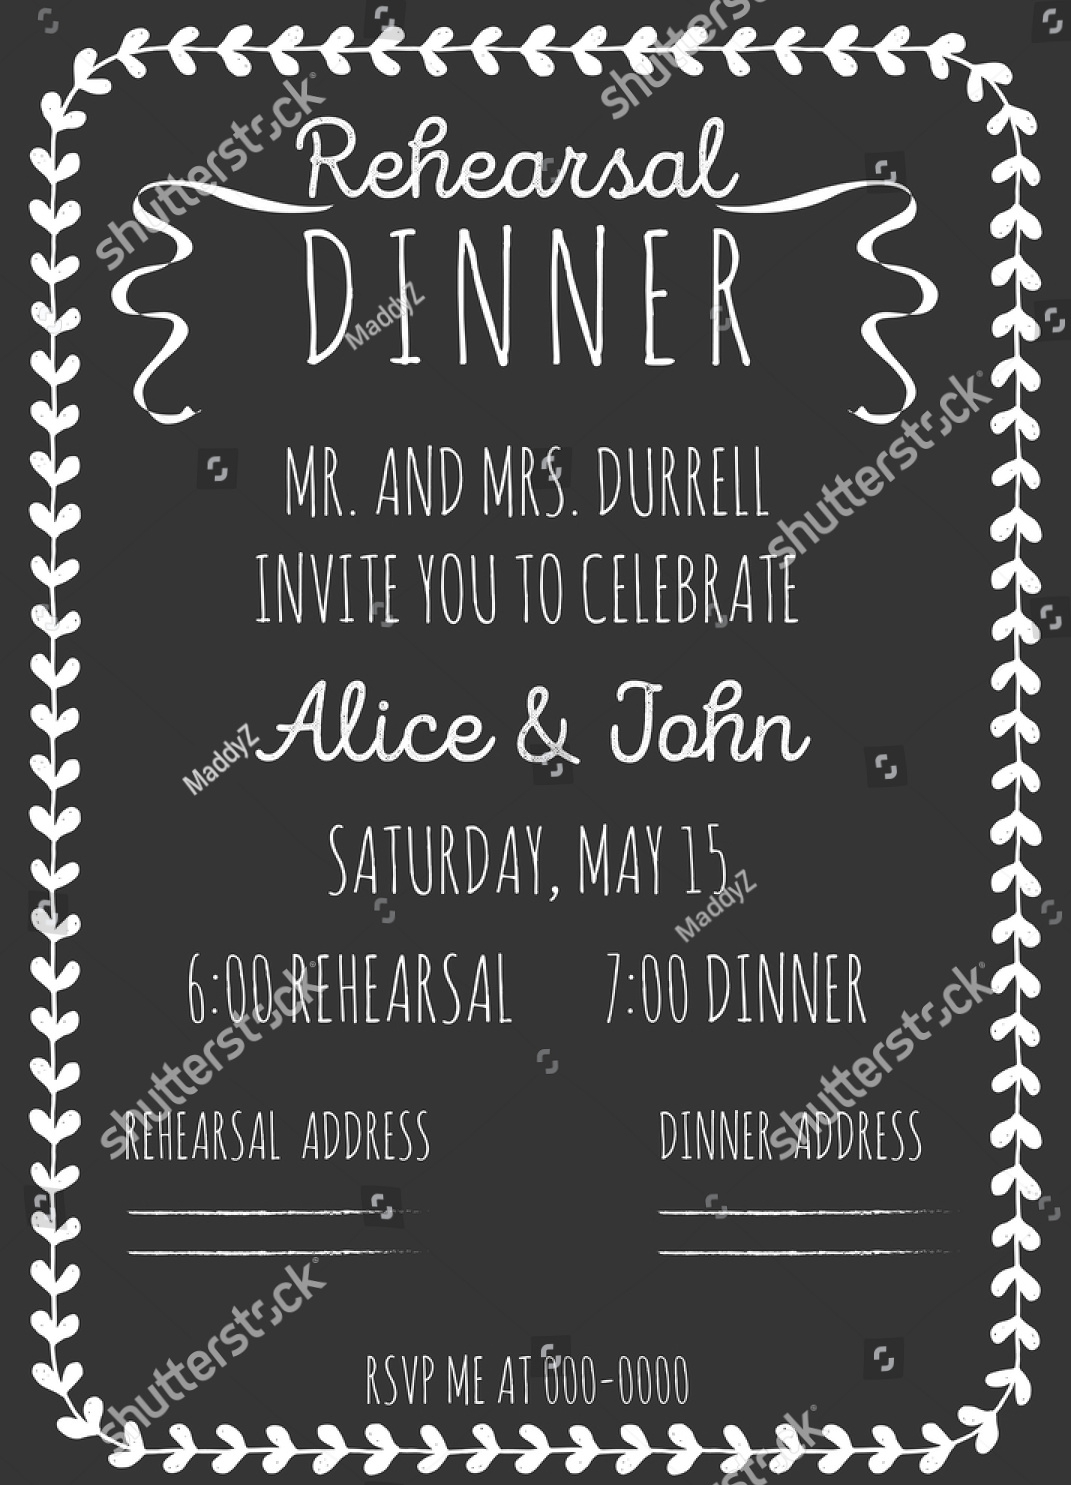 hand drawn wedding rehearsal invitation